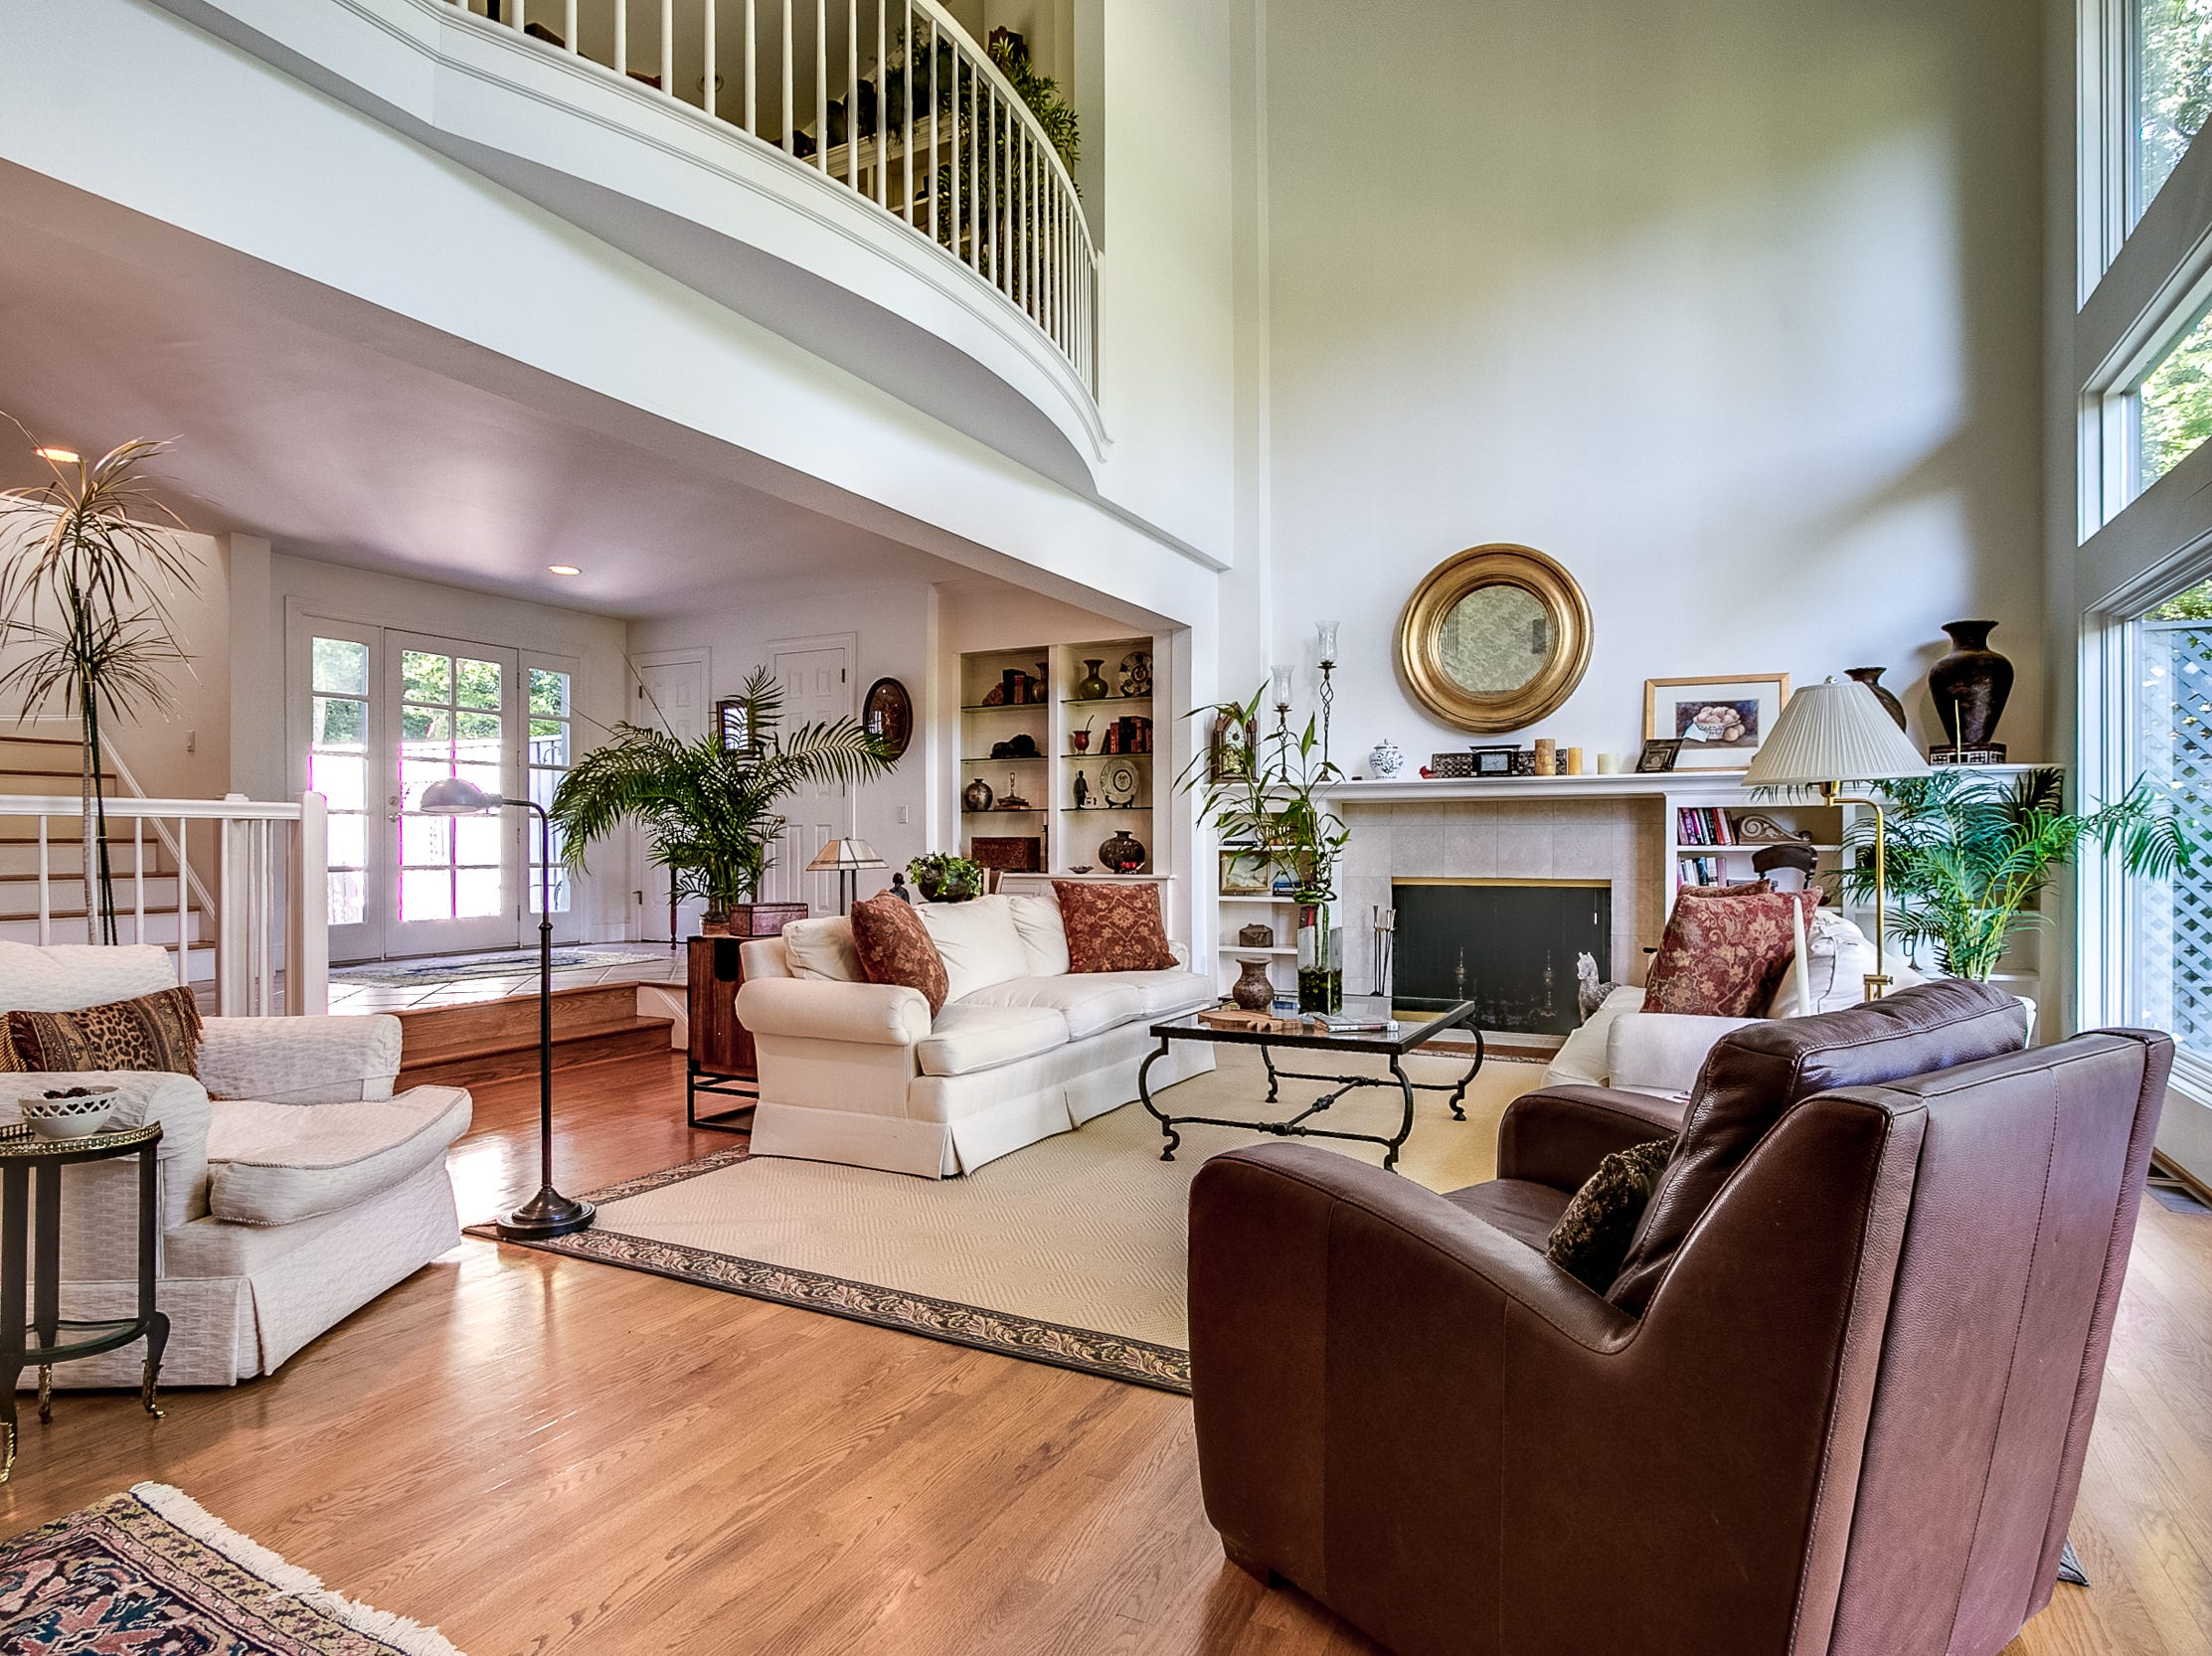 The open-concept living room is a favorite place for gatherings at 7 Brandywine Falls Road in Wilmington.